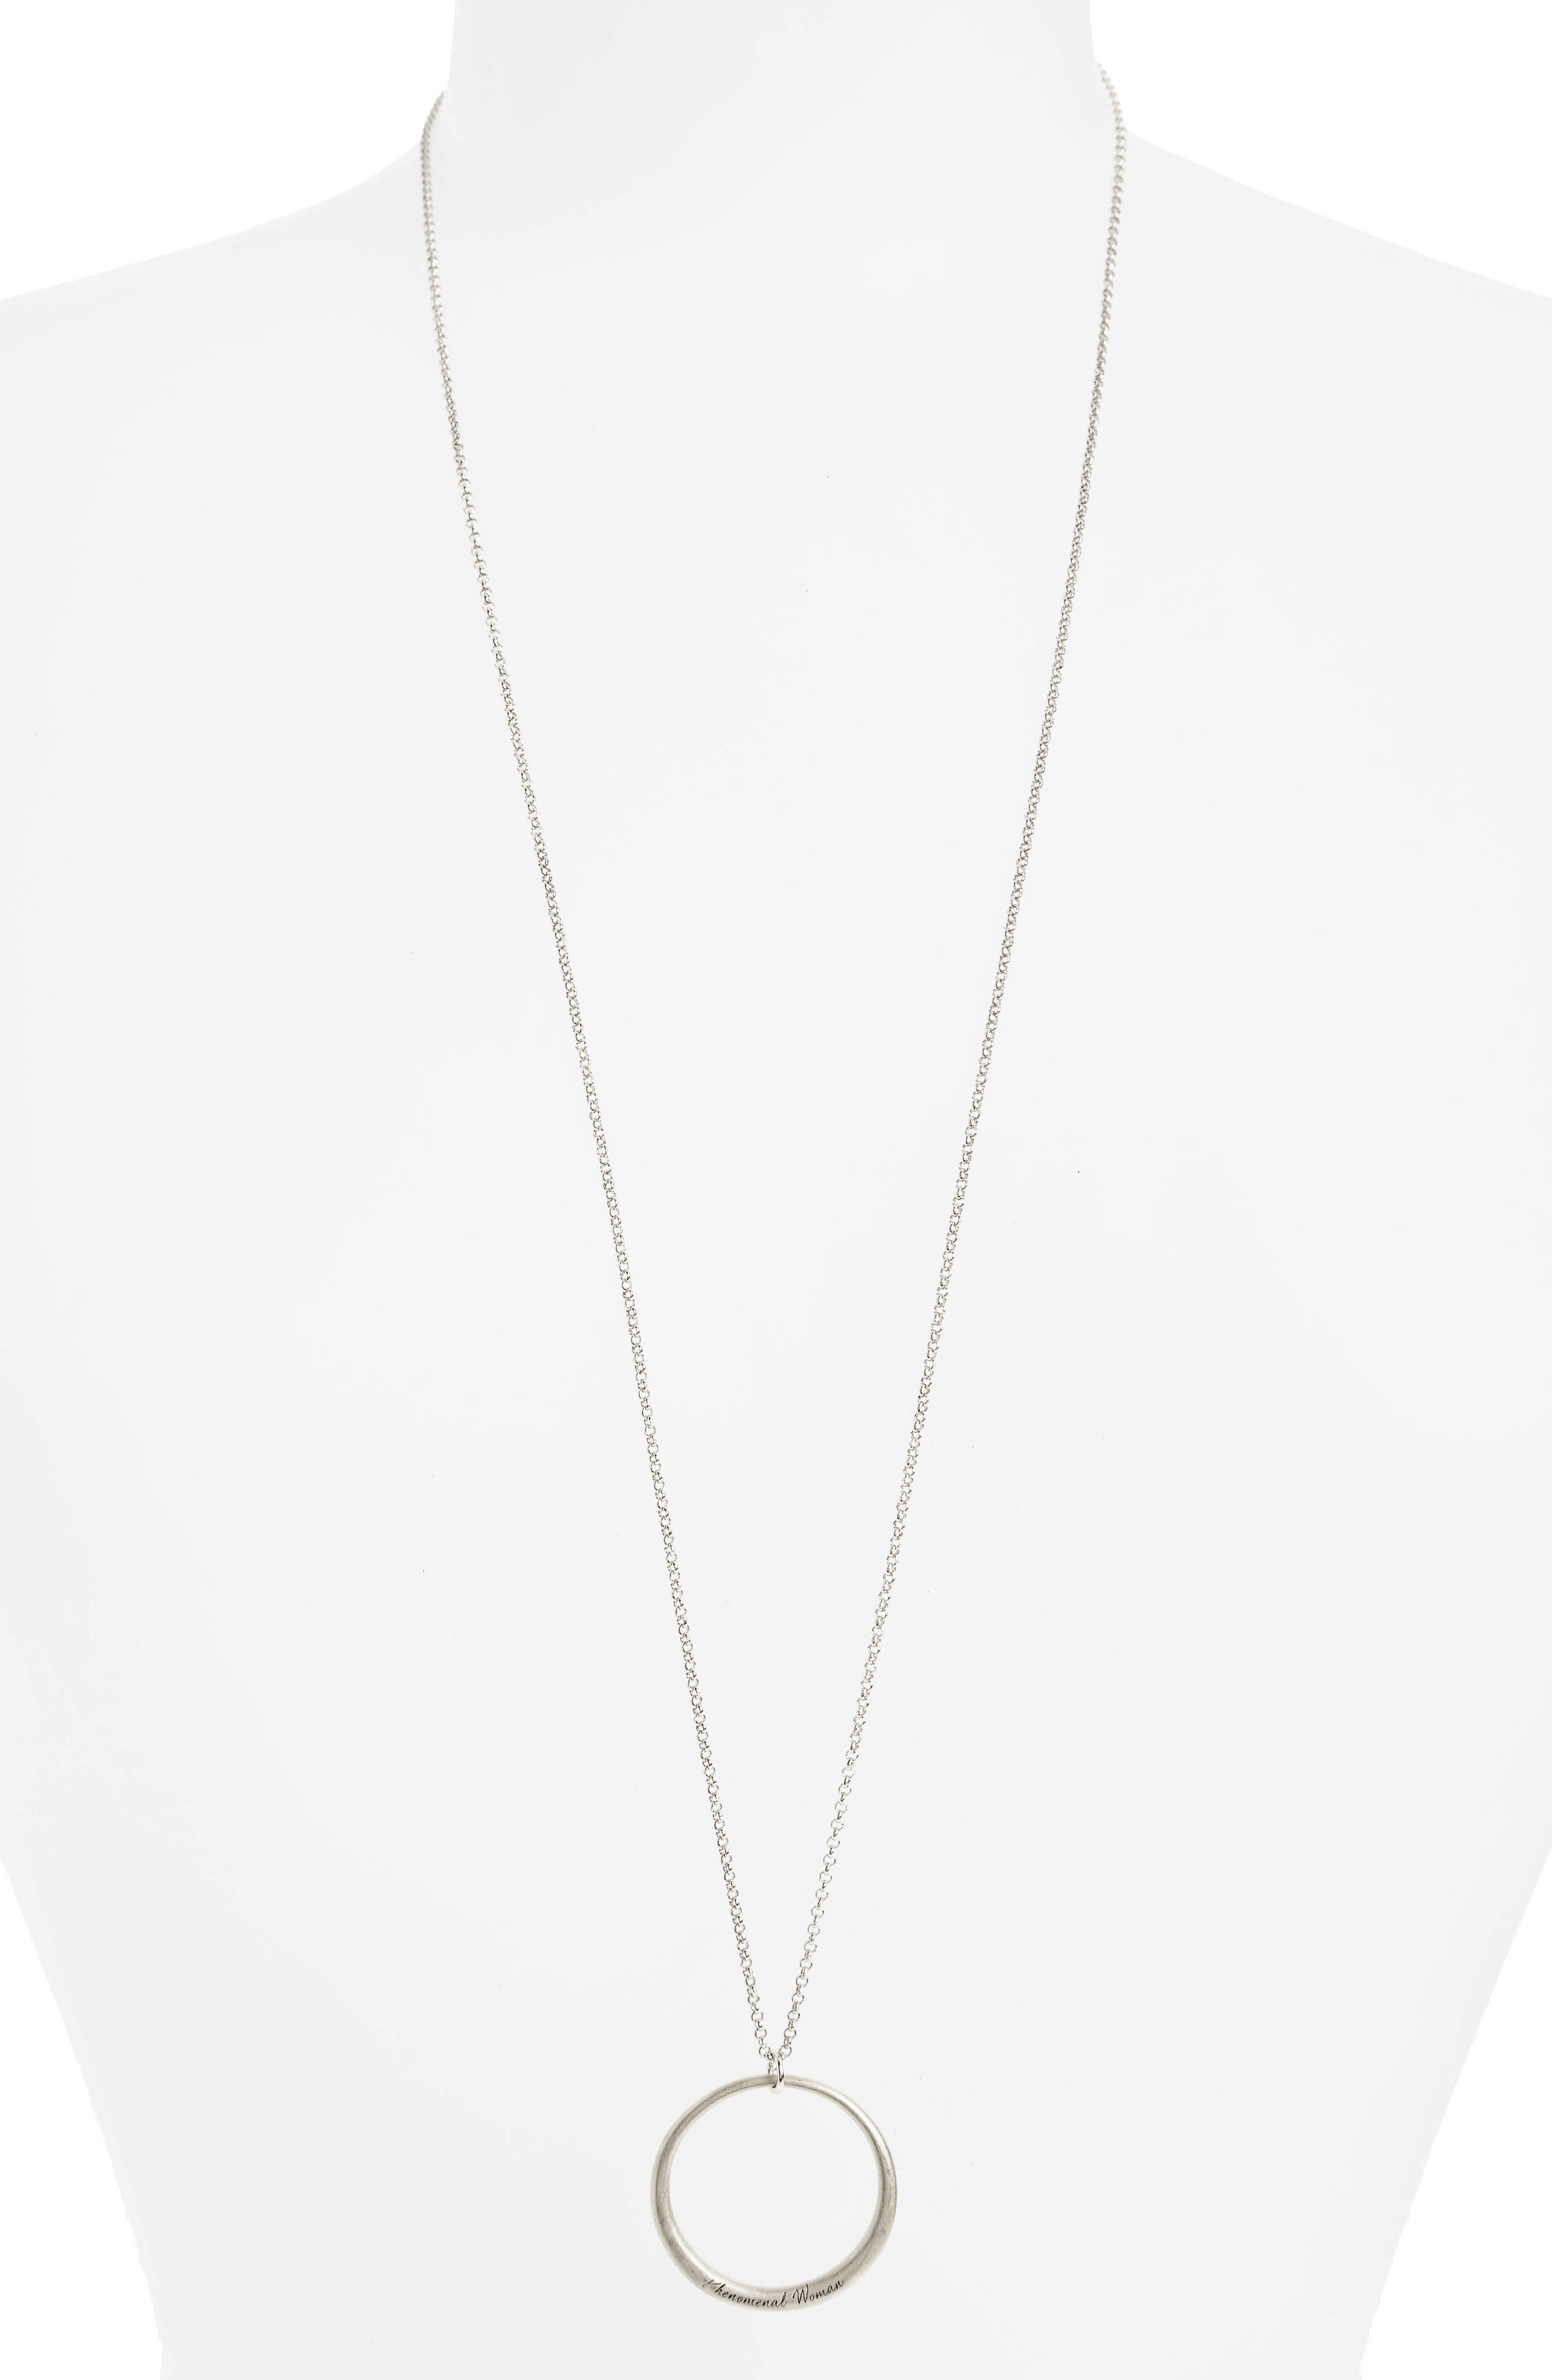 Legacy Collection - Phenomenal Women Open Circle Pendant Necklace,                             Alternate thumbnail 2, color,                             040